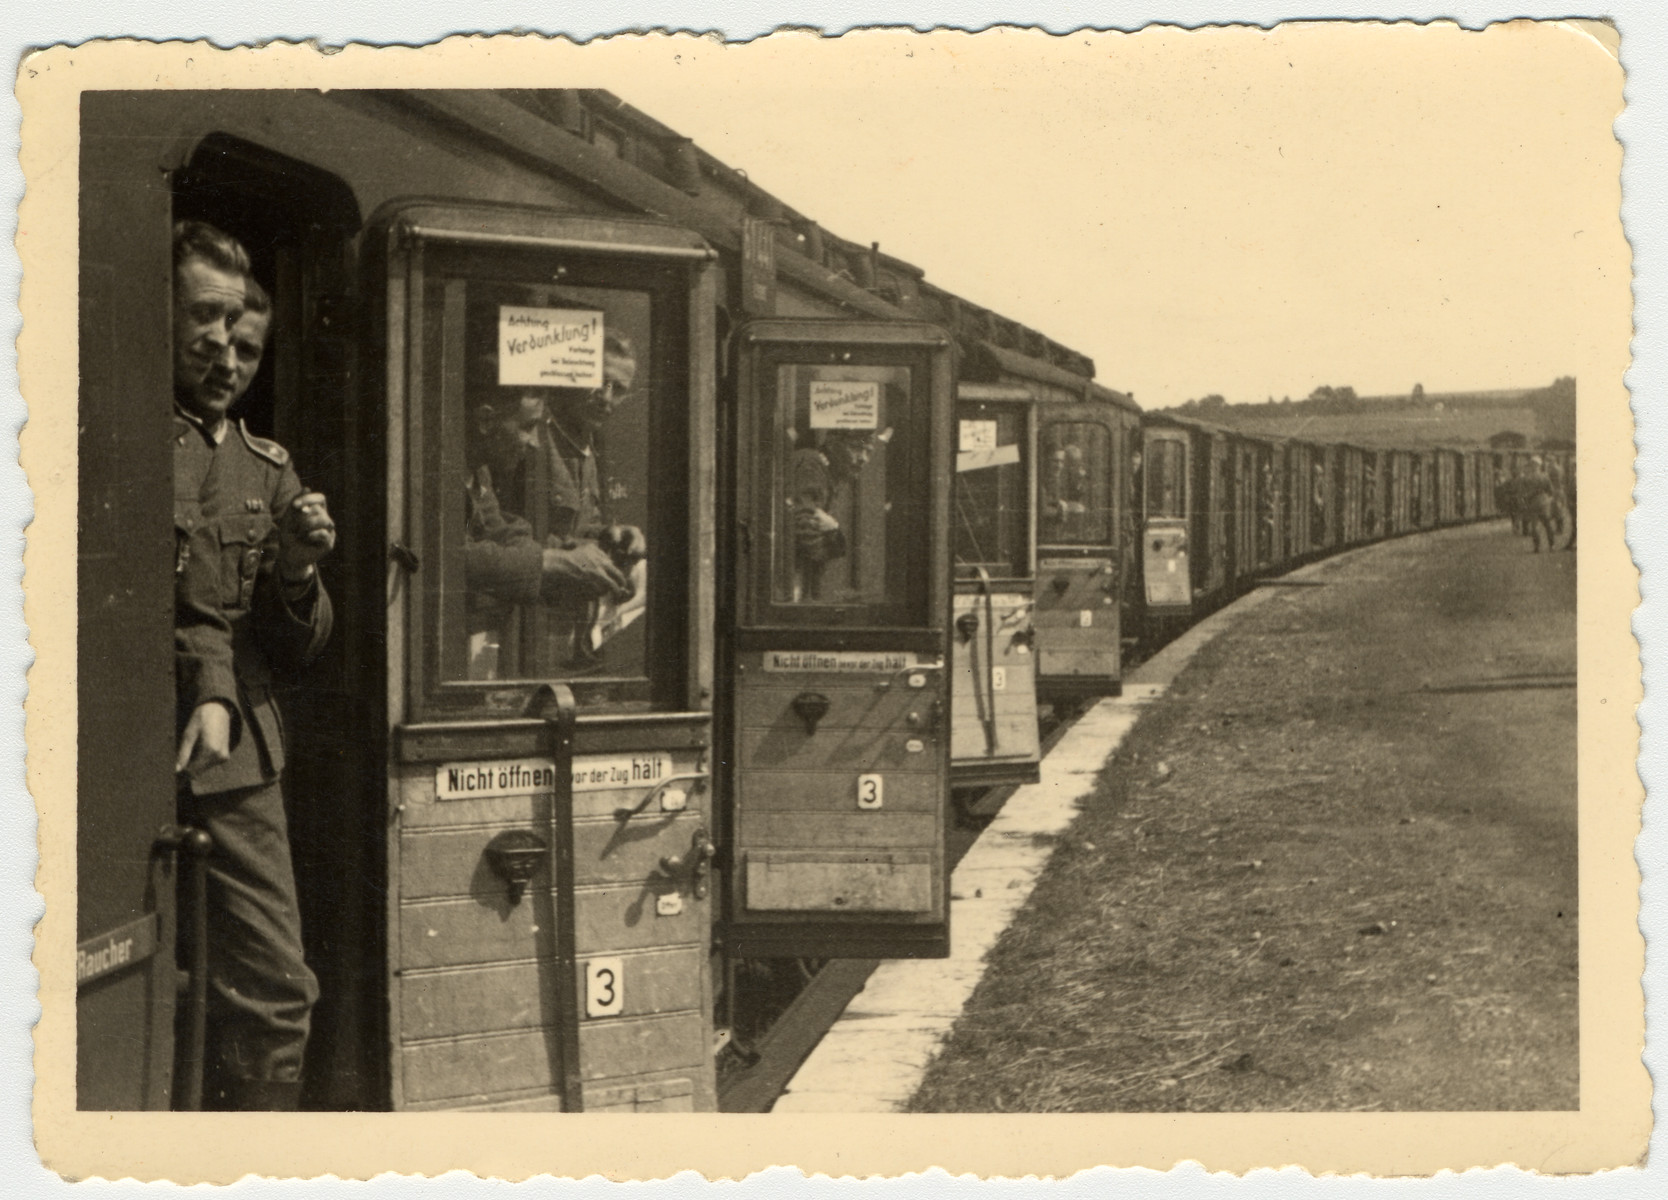 Members of the German military look out the door of a train.